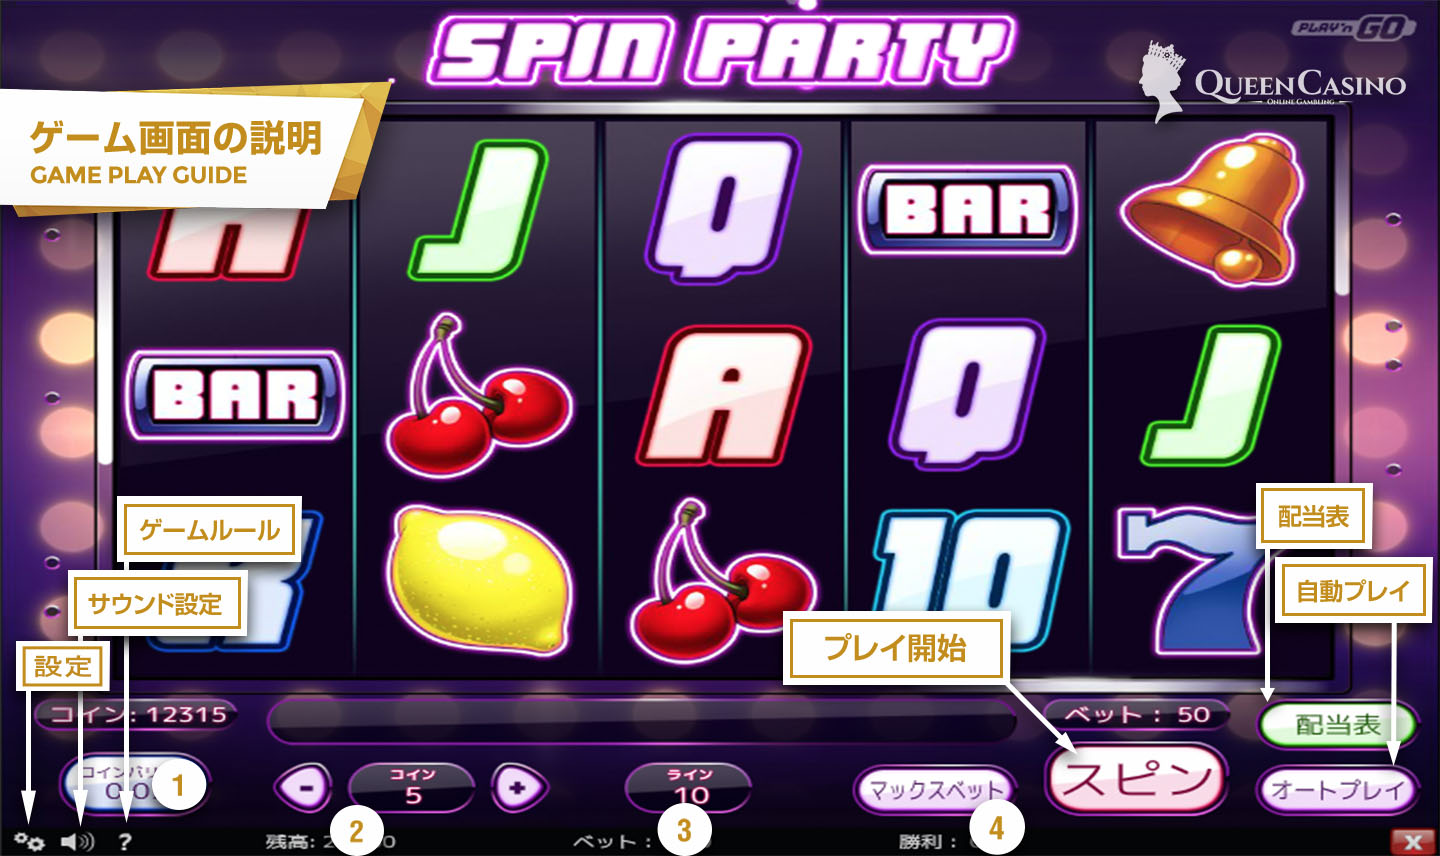 Spin Party – スピンパーティー ゲーム画面説明